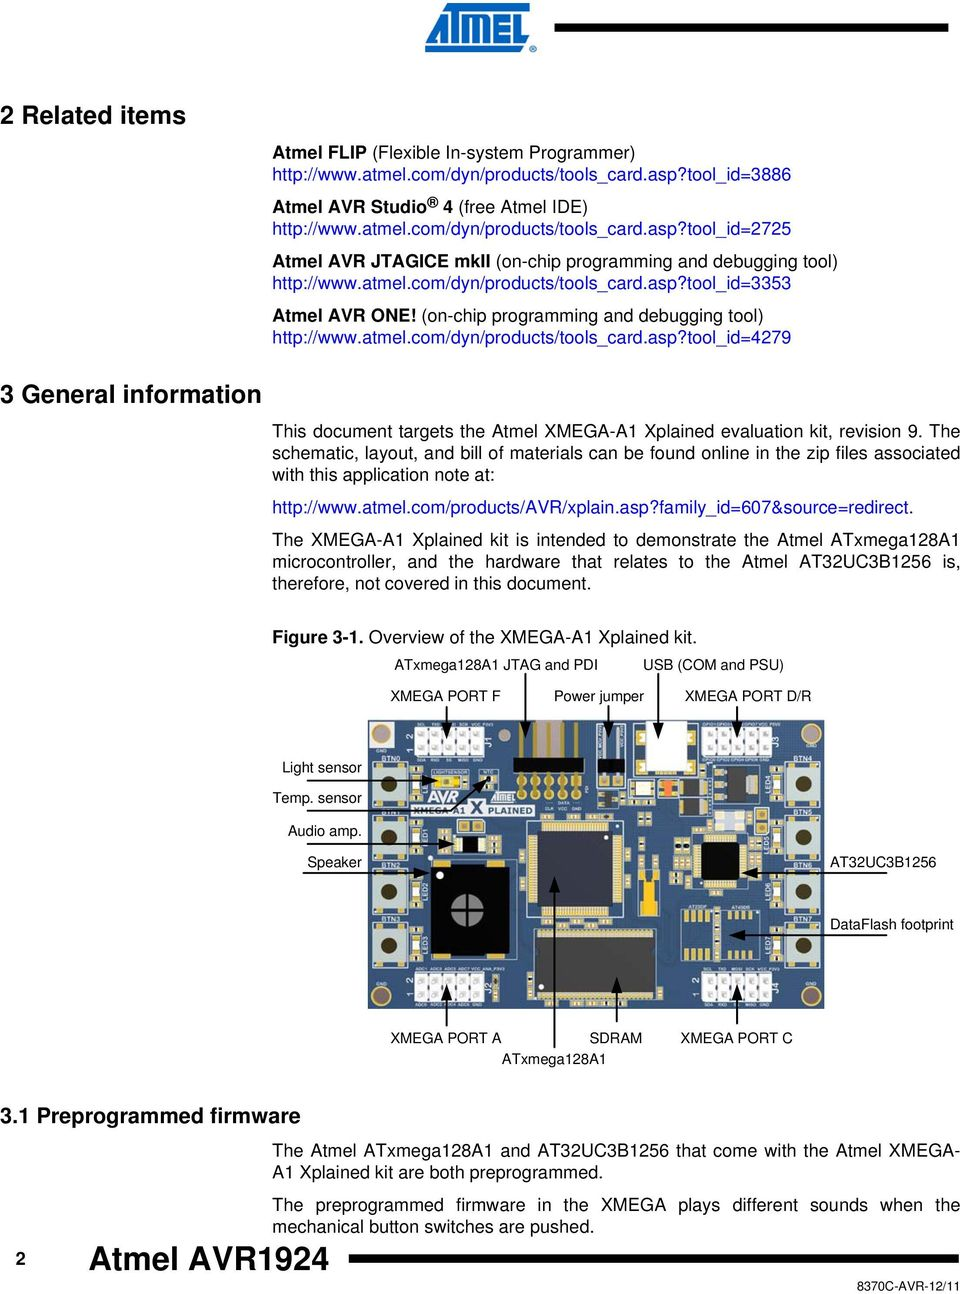 The schematic, layout, and bill of materials can be found online in the zip files associated with this application note at: http://www.atmel.com/products/avr/xplain.asp?family_id=607&source=redirect.